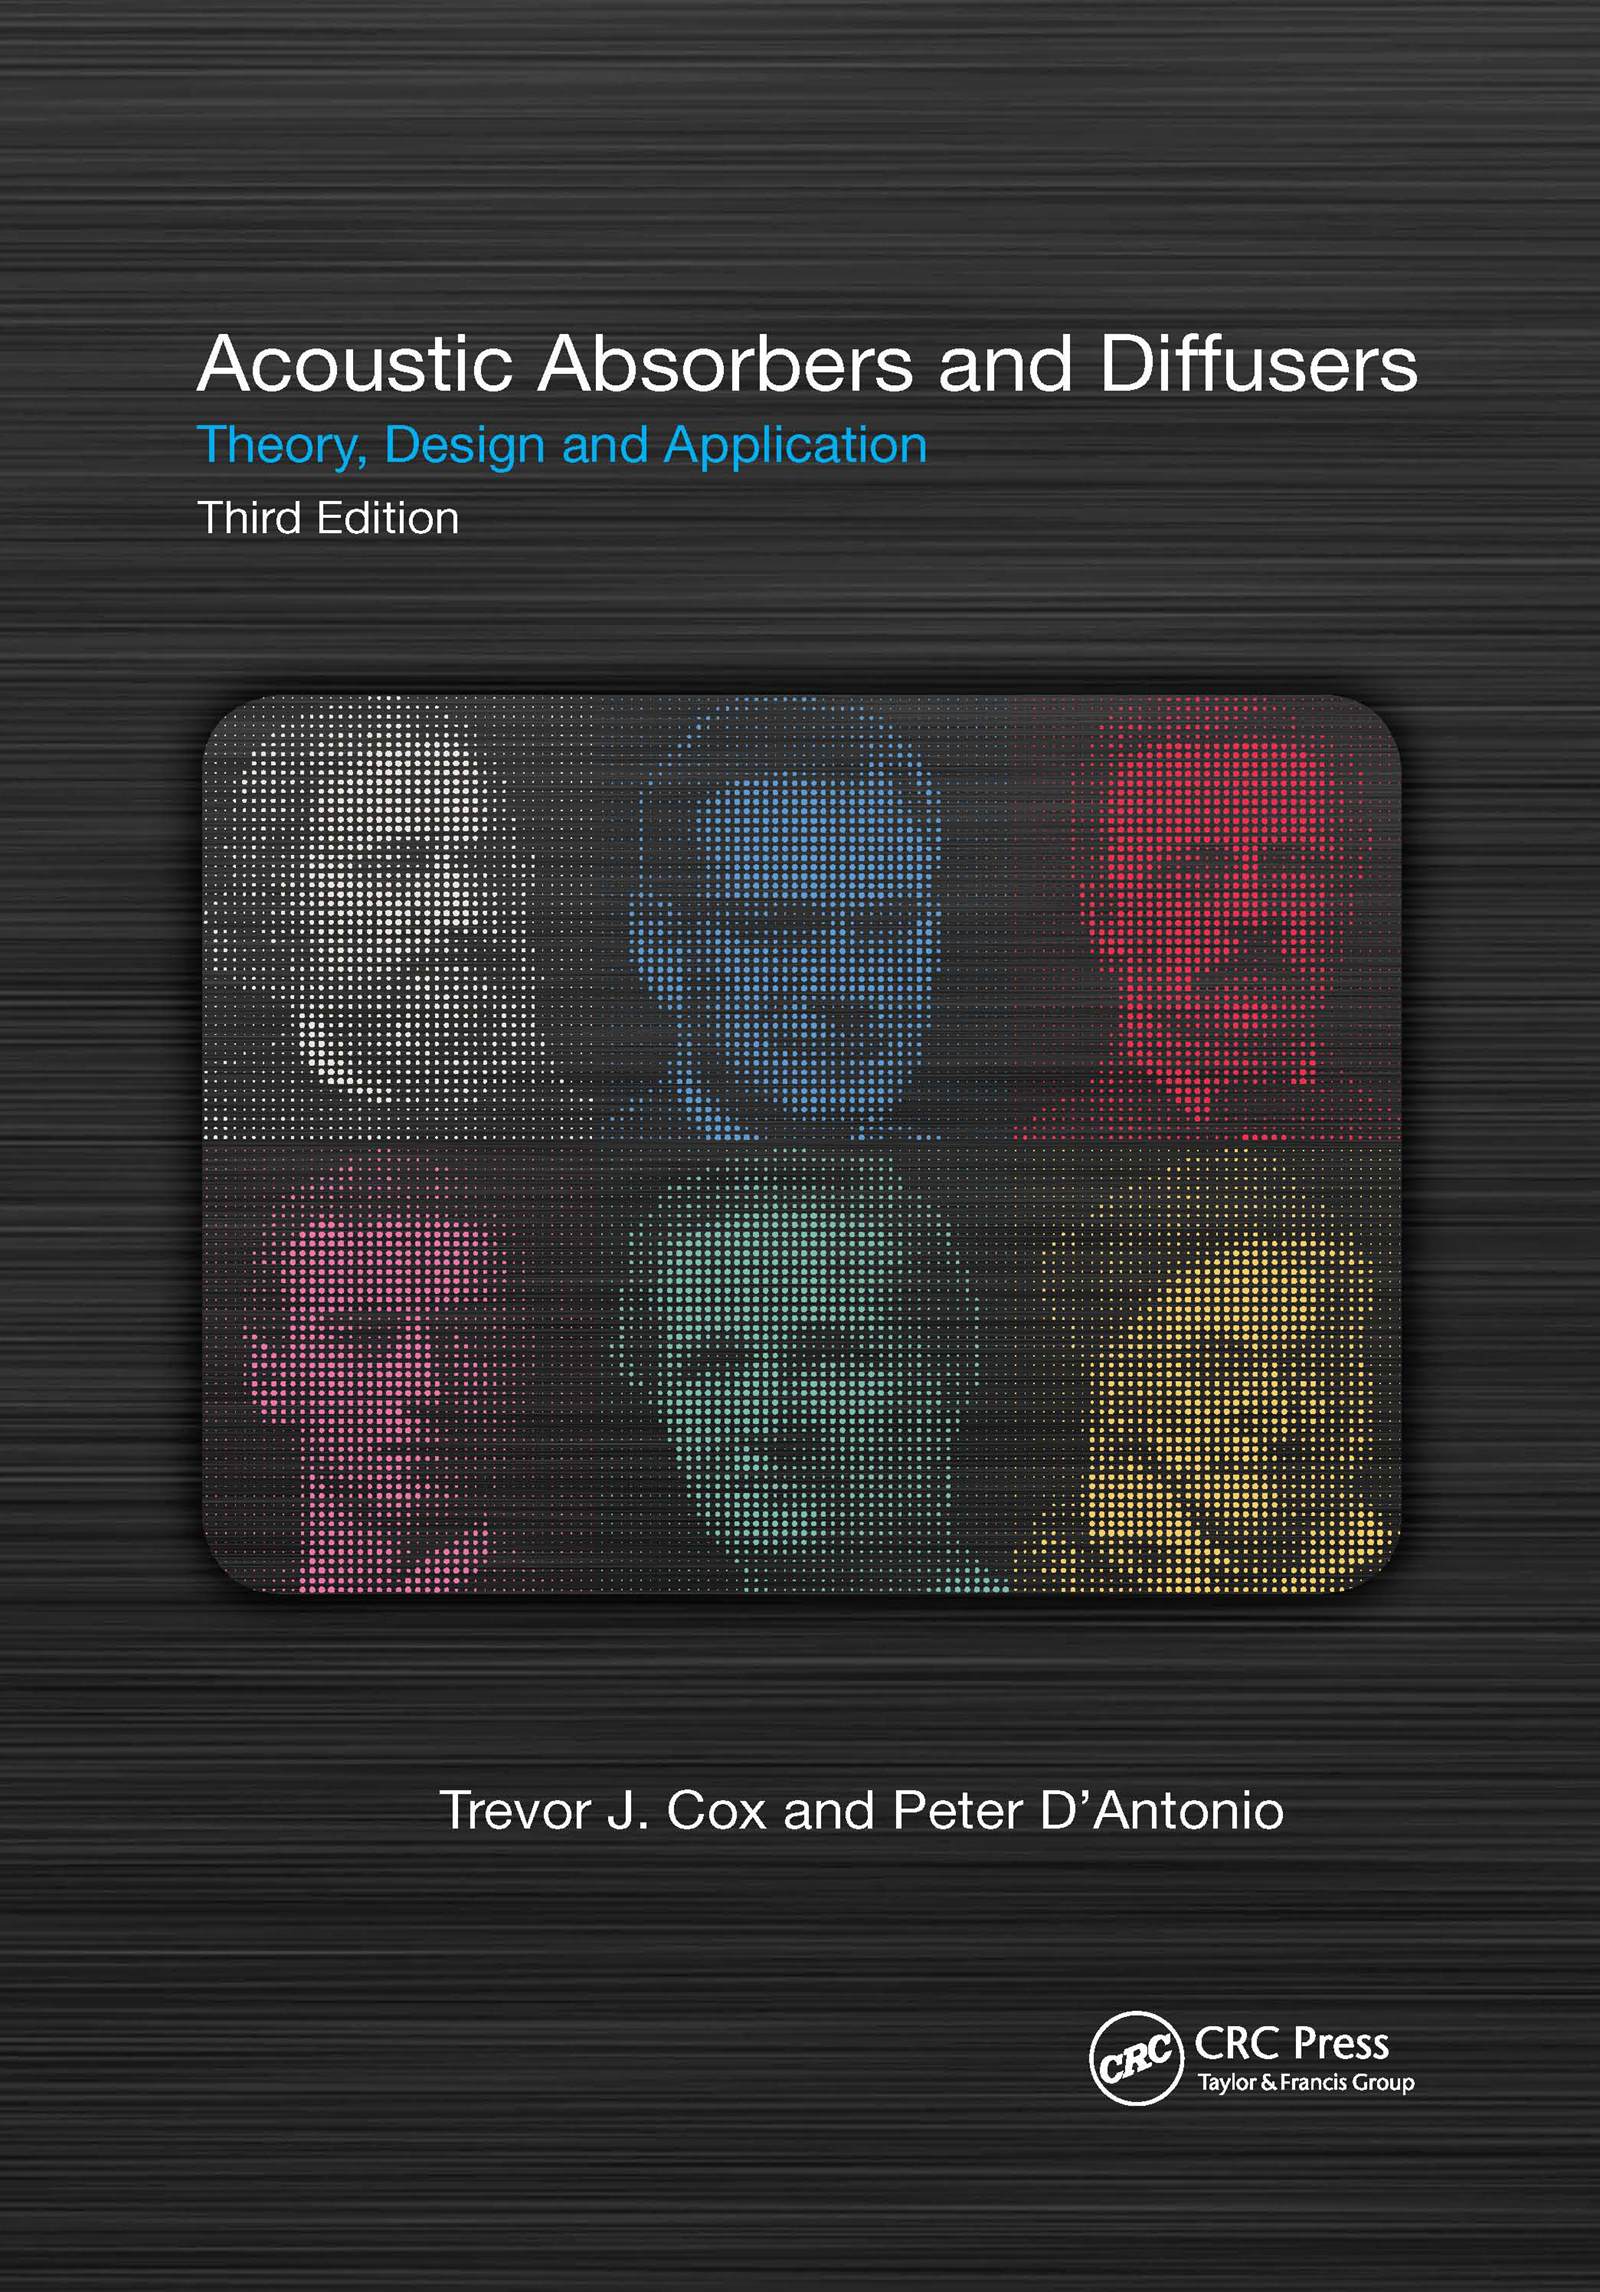 Acoustic Absorbers and Diffusers